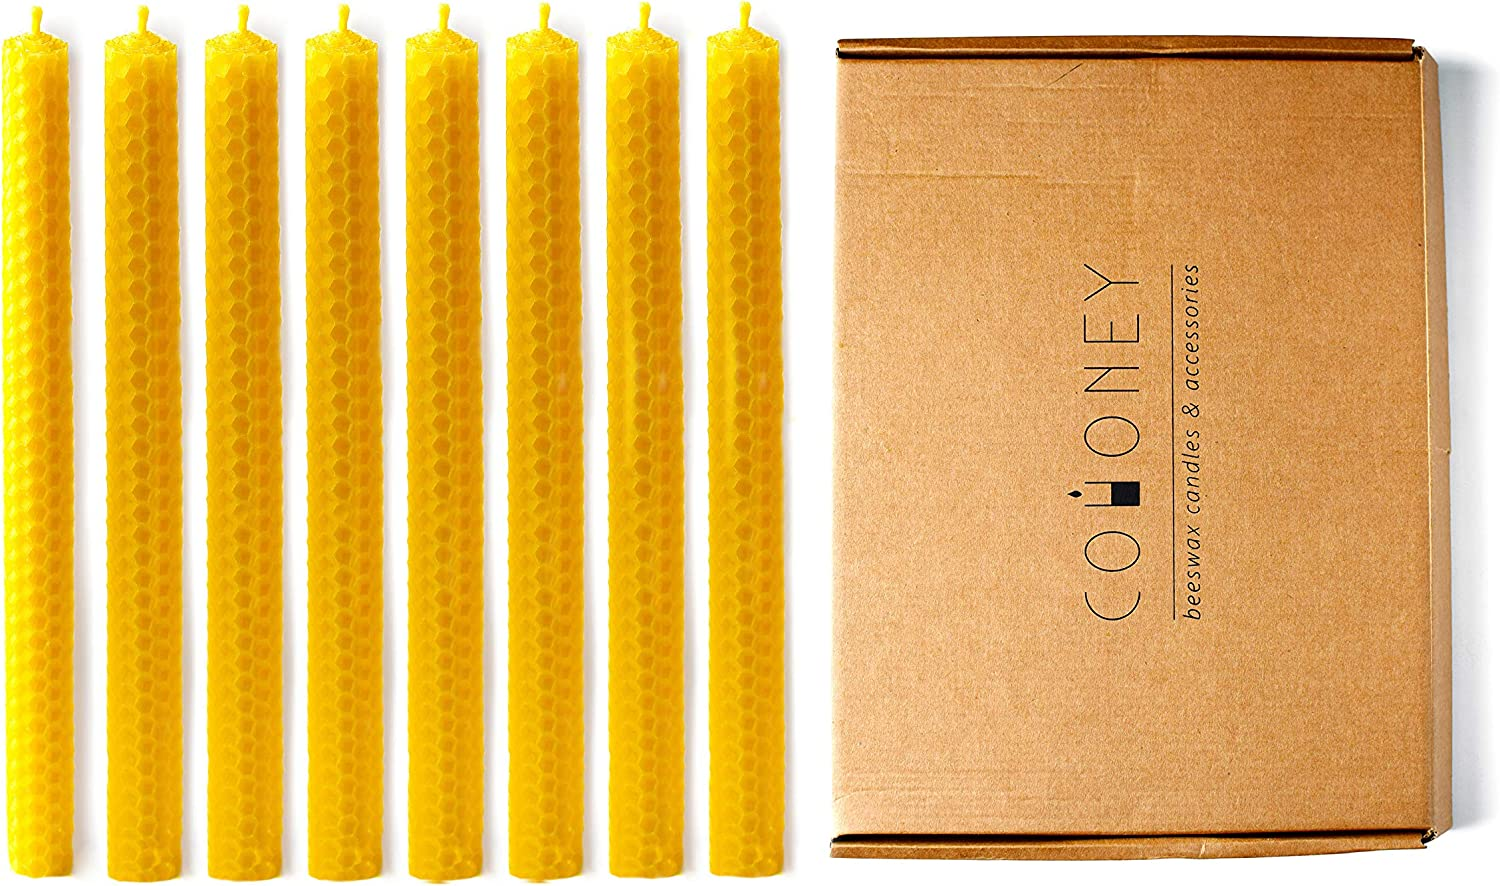 Cohoney Large Beeswax Taper Candles Fees free Set Dallas Mall 8 12 Candlesticks i of